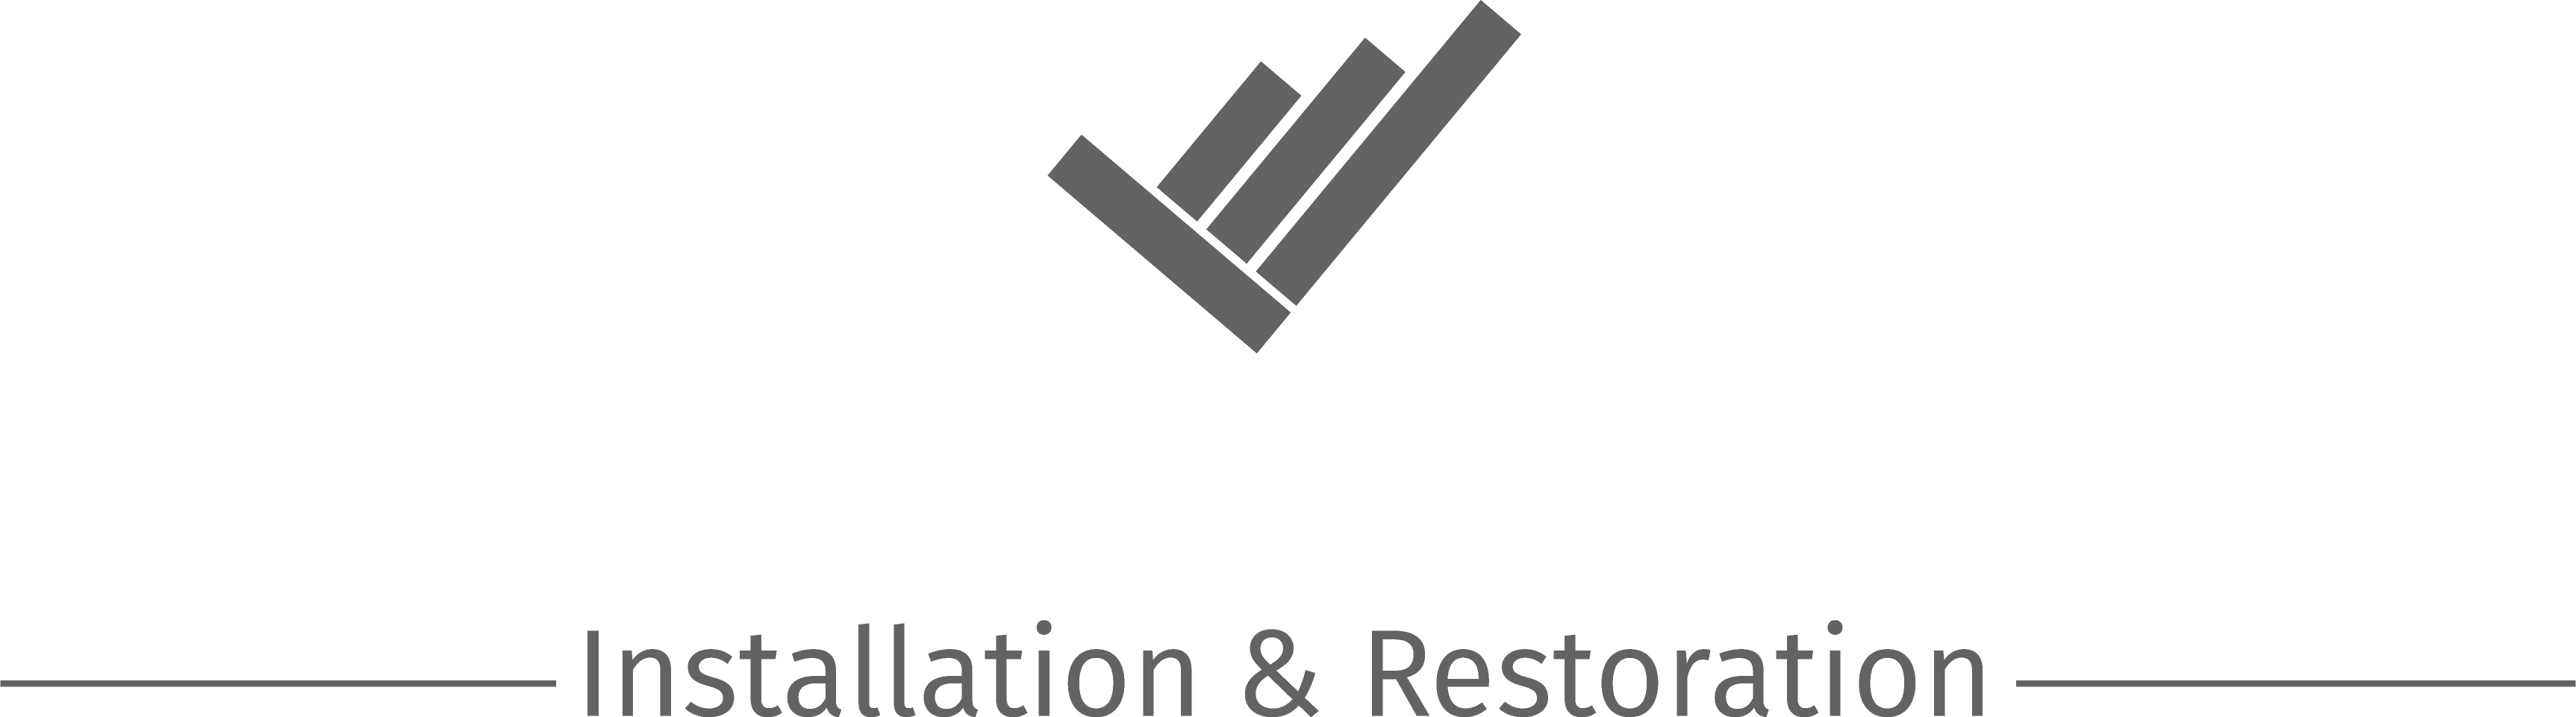 N & L Flooring Services